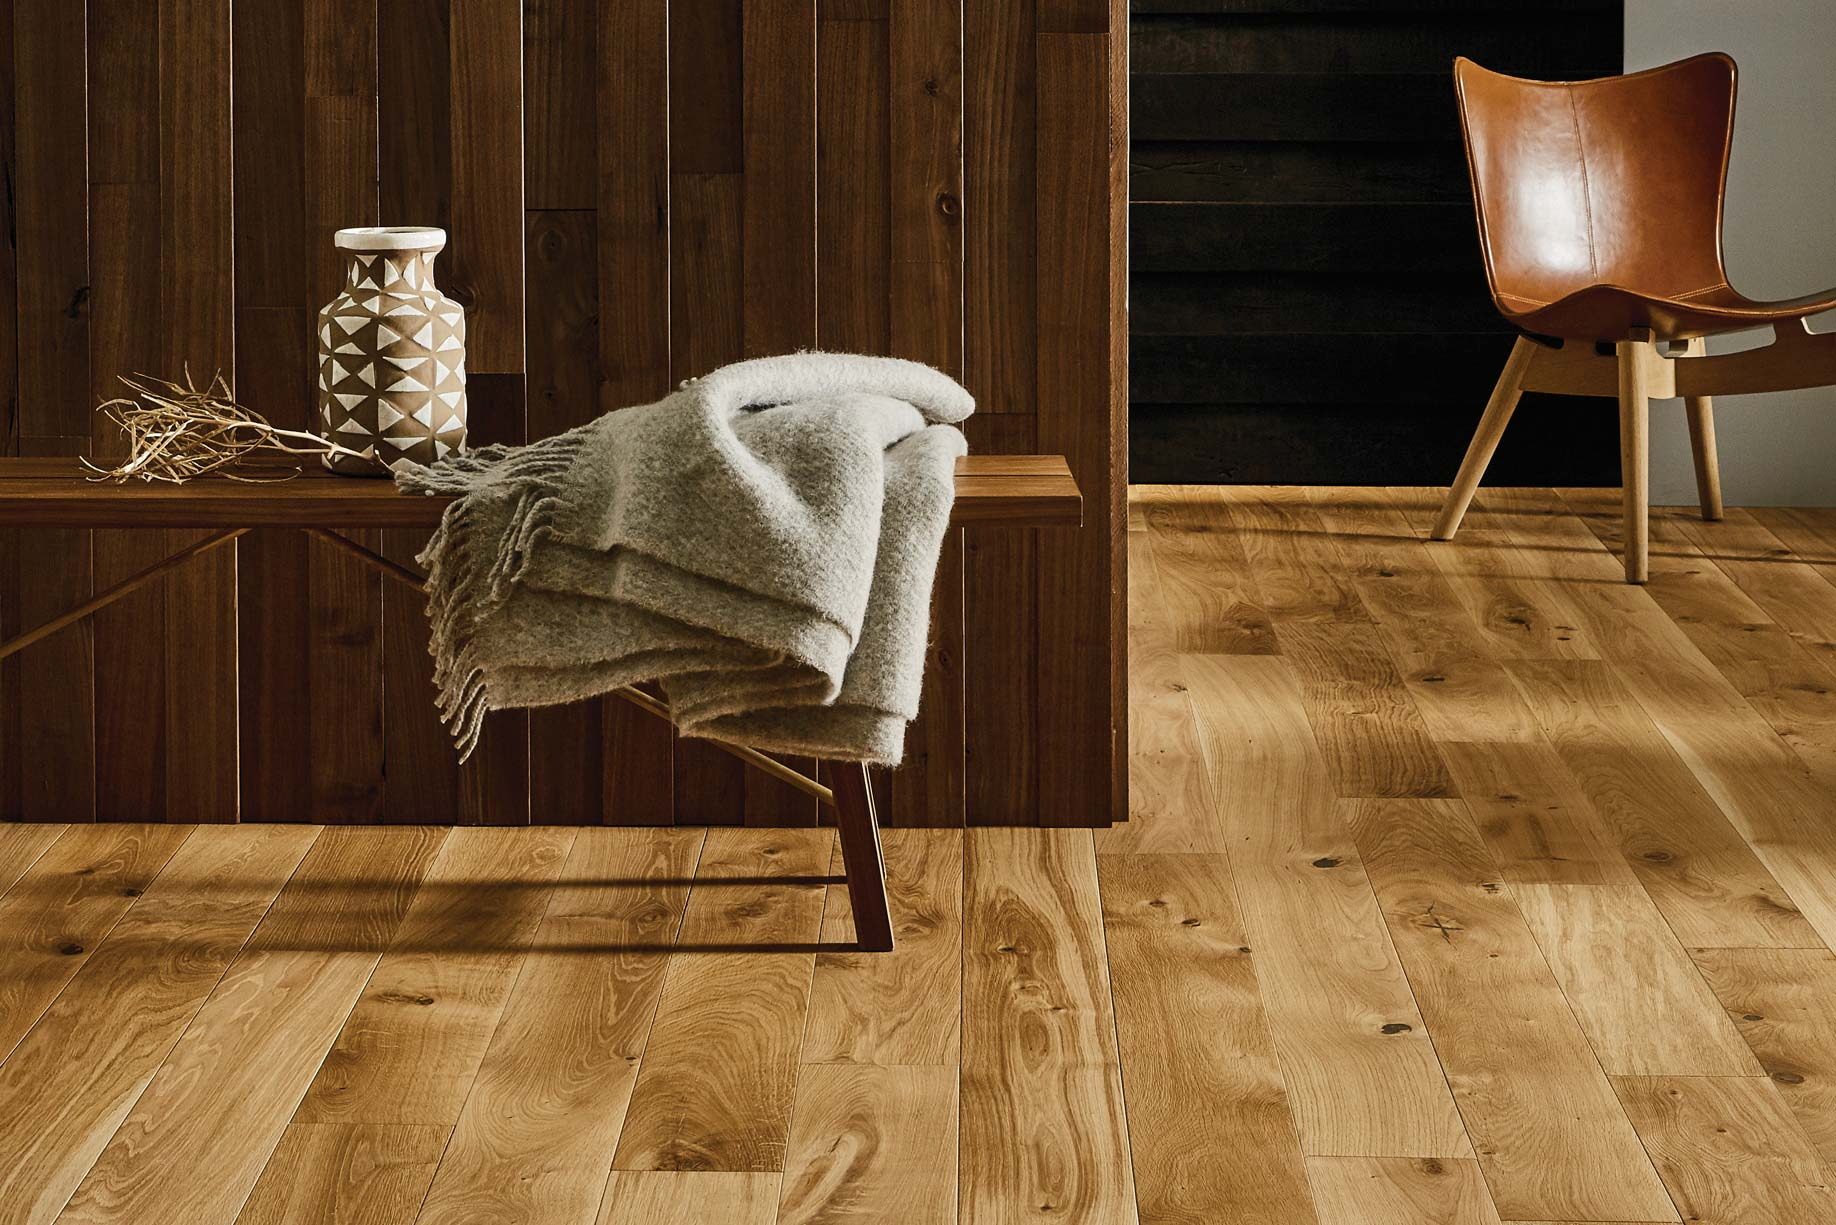 East Yorkshire Wood Flooring